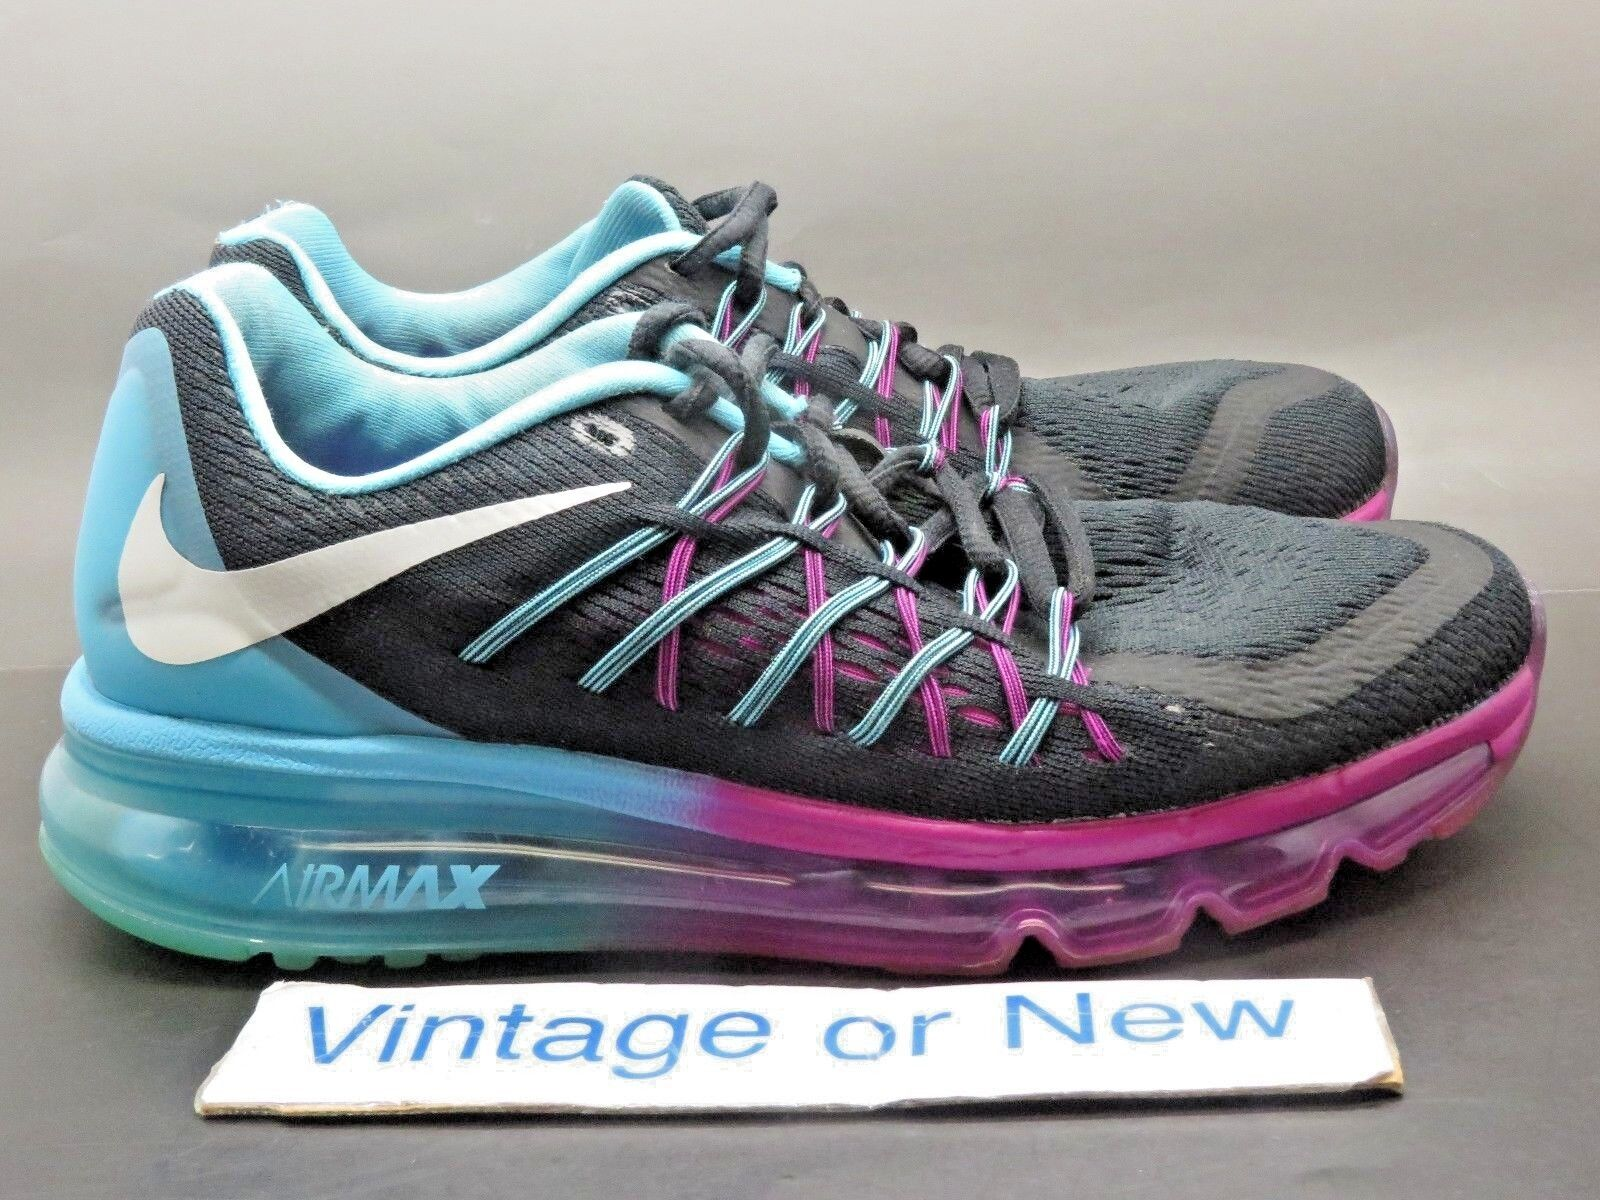 huge selection of a75e1 988f1 Women s Nike Air Max 2015 Black White Clearwater Running Running Running  Shoes 698903-004 sz 6.5 321c48